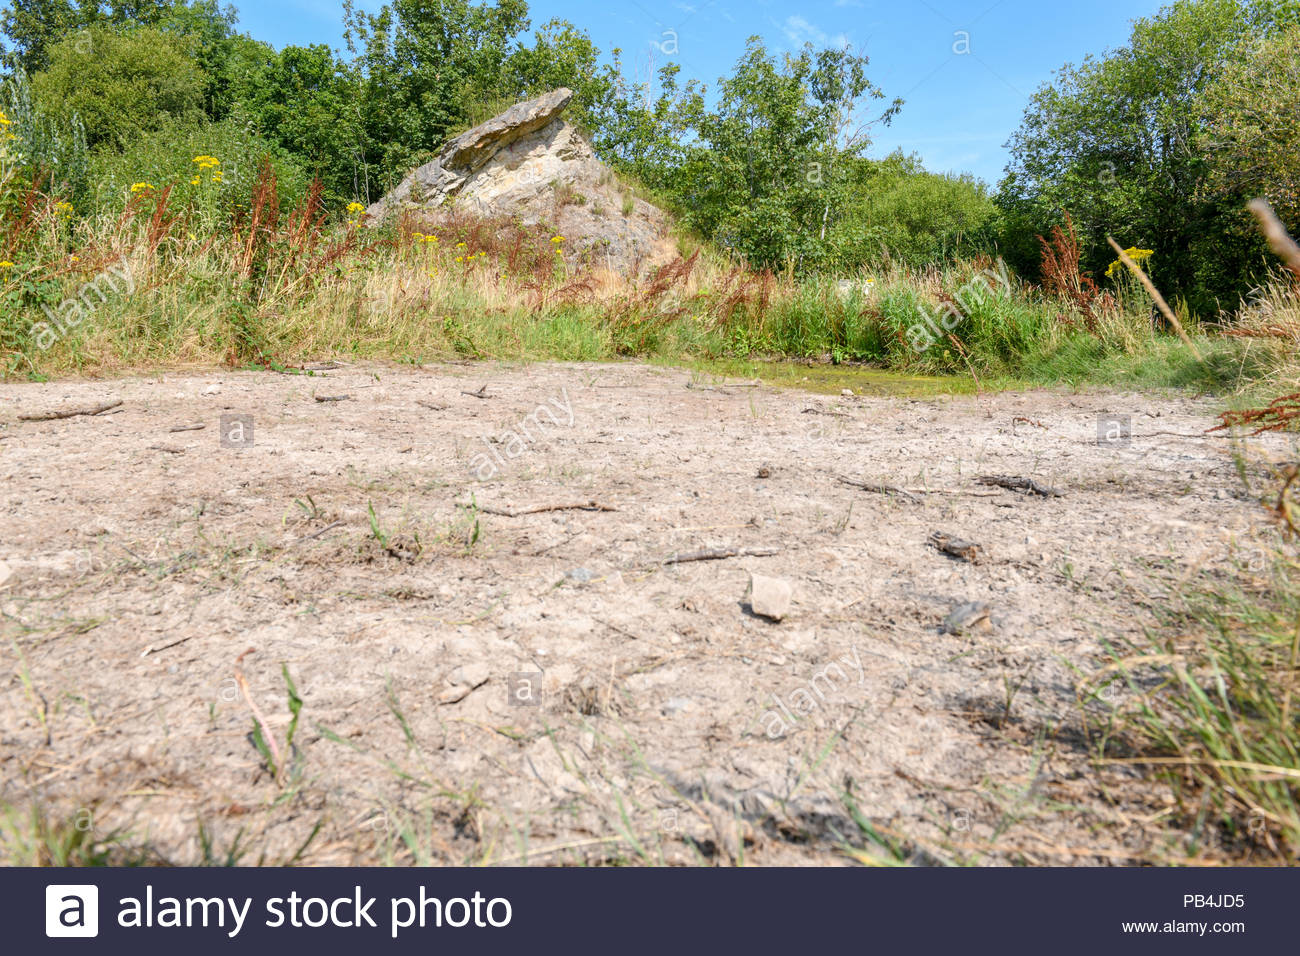 Dried up wildlife ponds surrounded by dry grassland in Shropshire UK - Stock Image